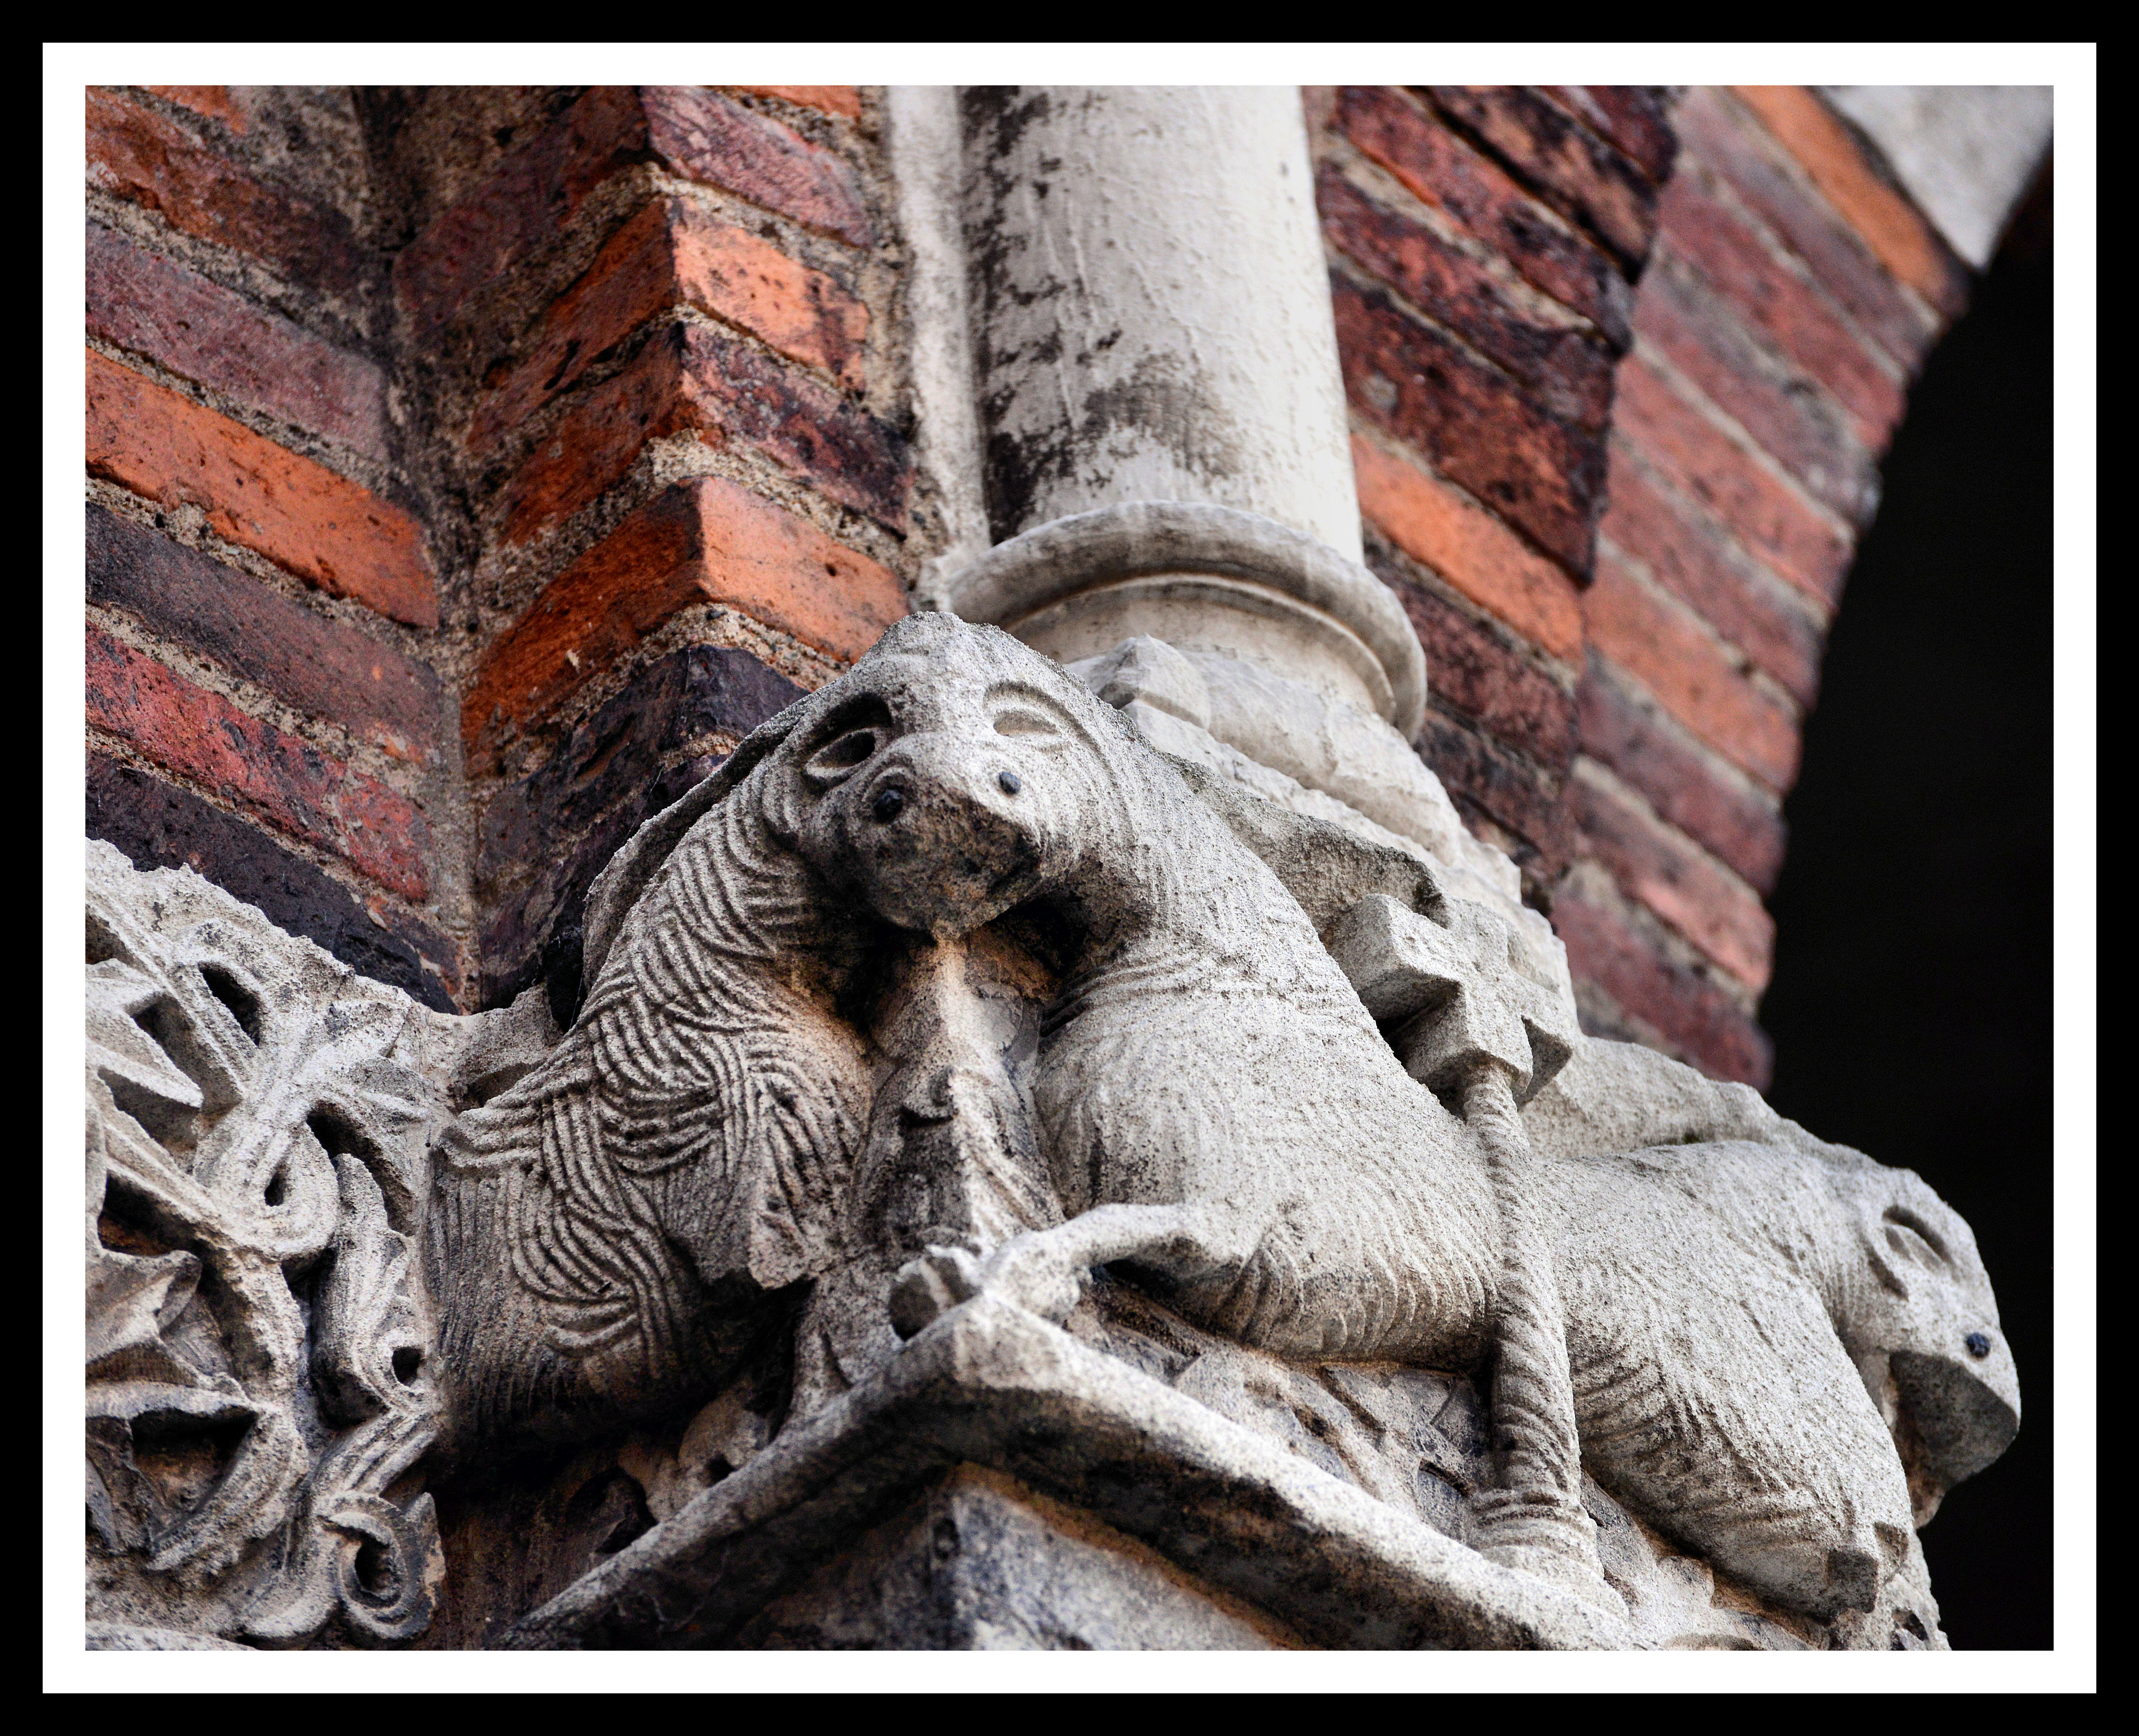 Milano, Basilica di Sant'Ambrogio, capitelli, 2018, Animal, Arte, Basilica, HQ Photo